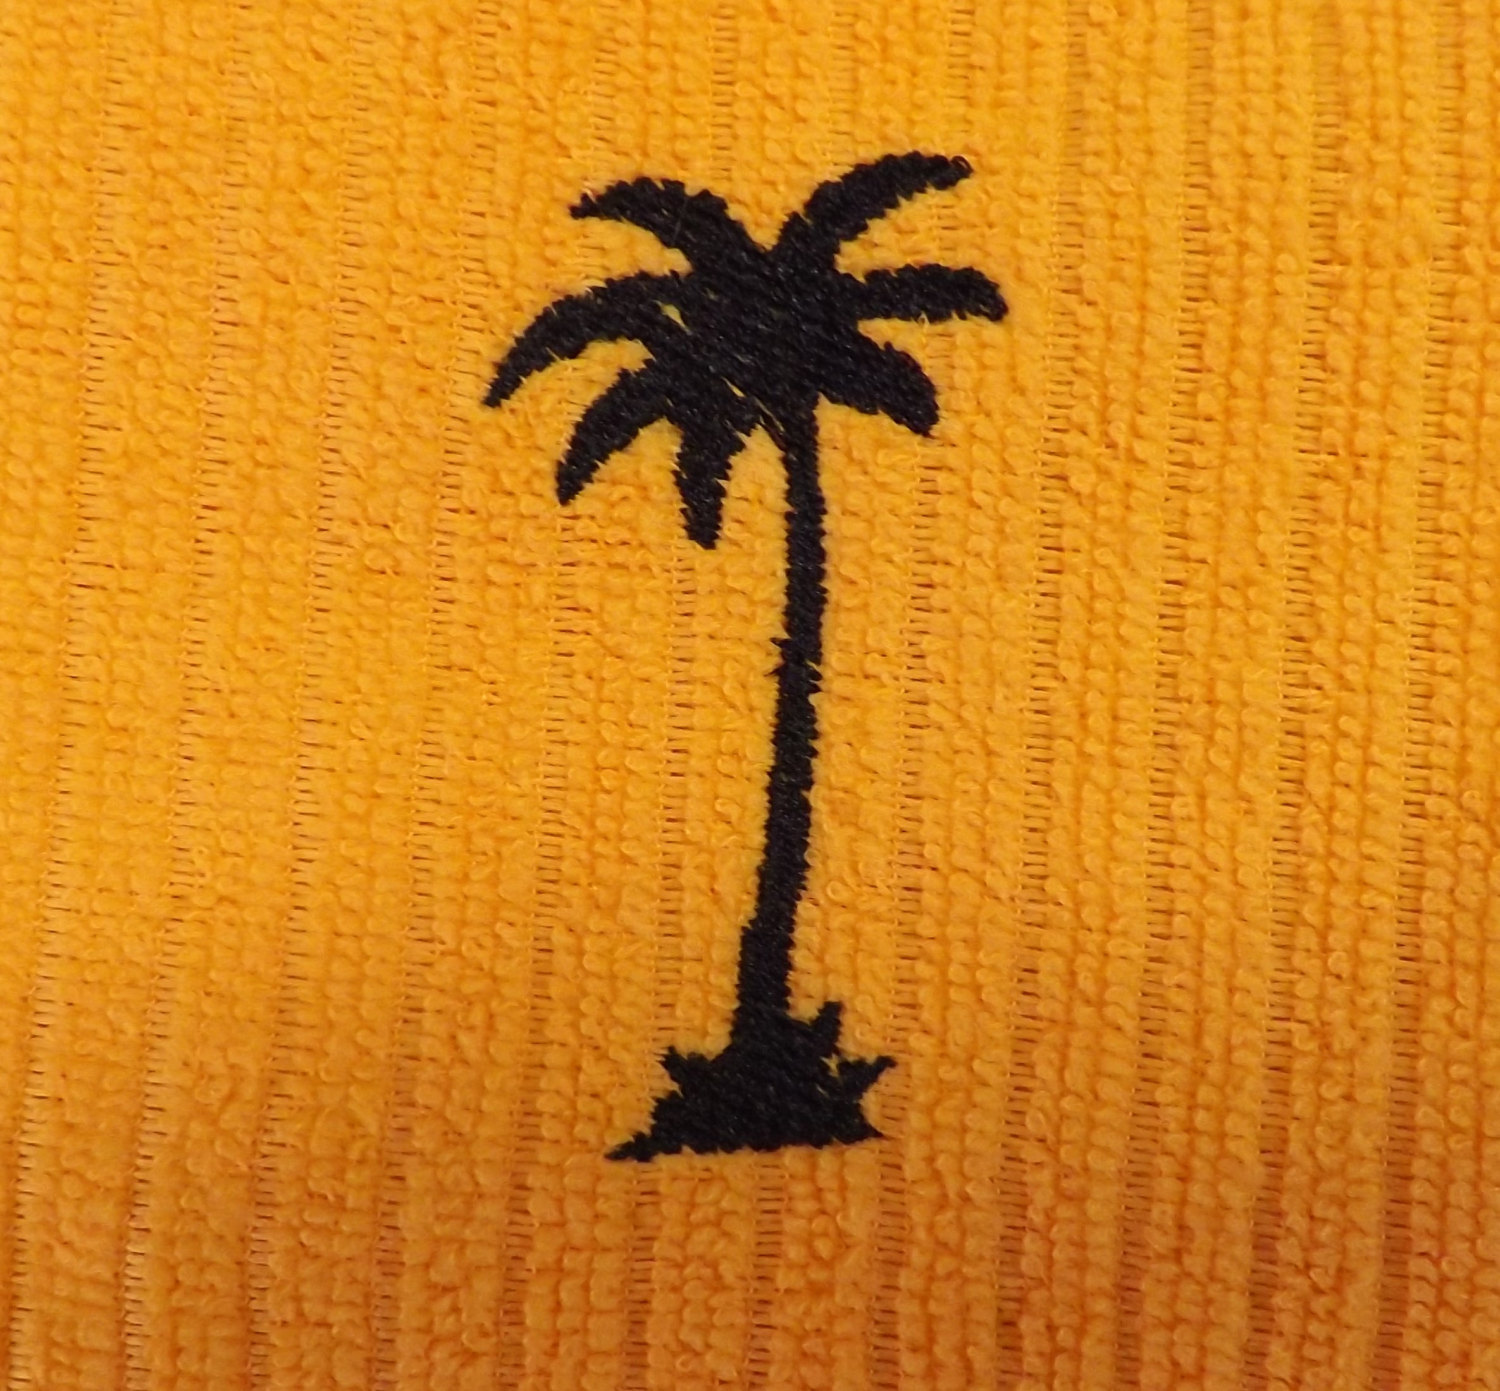 Embroidered Tangerine Kitchen Towel with Palm Tree from EvianZO Designs